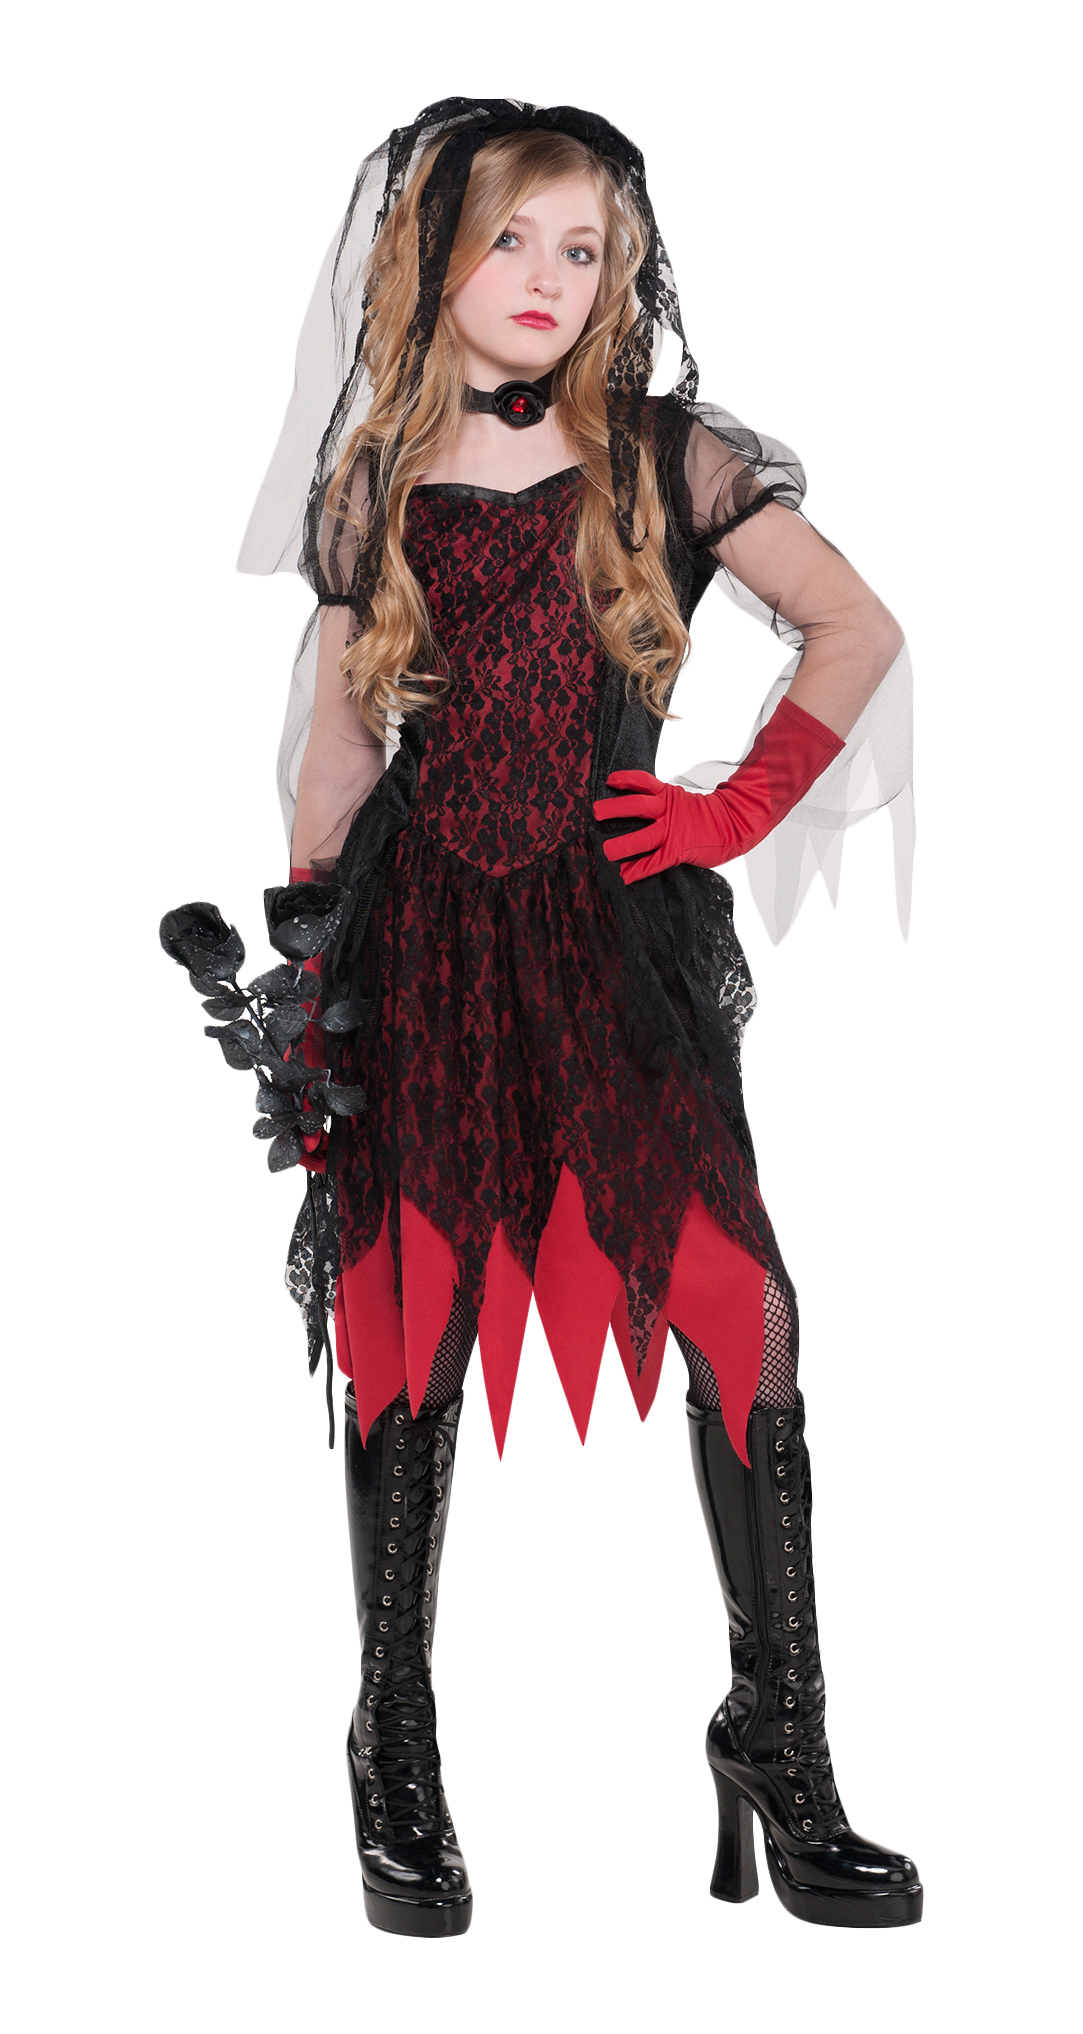 sentinel deadly wed zombie age 8 14 girls fancy dress halloween childs kids costume new